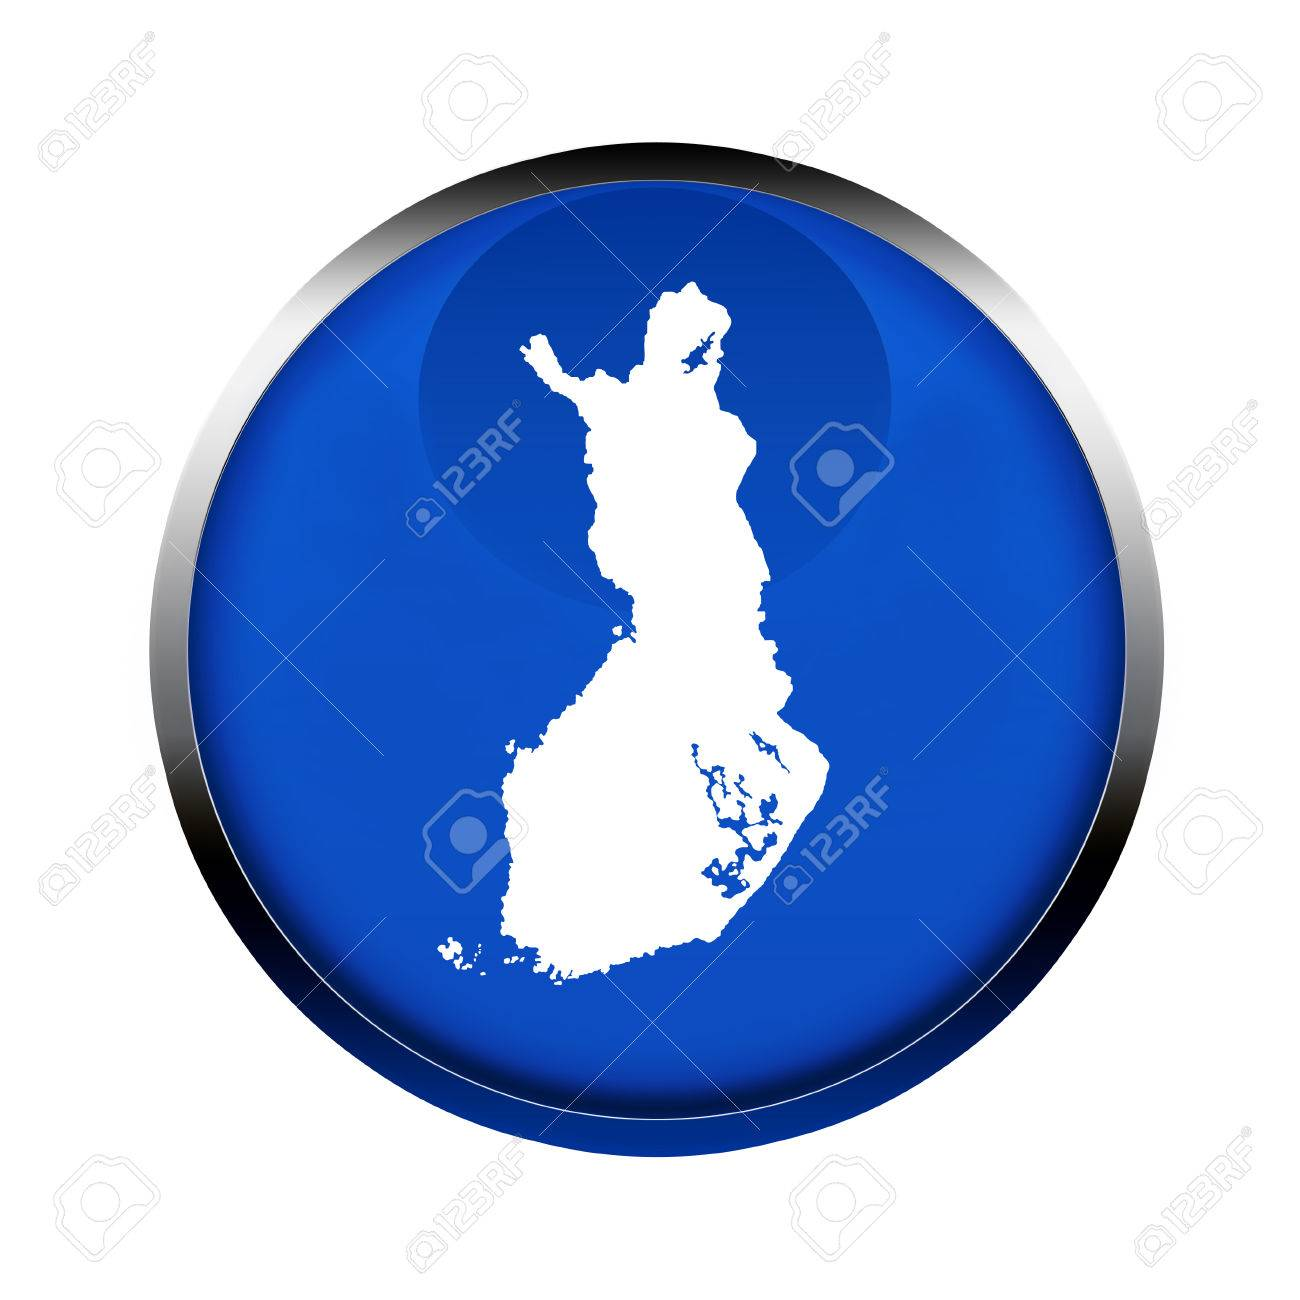 Finland Map Button In The Colors Of The European Union  Stock Photo     Finland map button in the colors of the European Union  Stock Photo    61030590